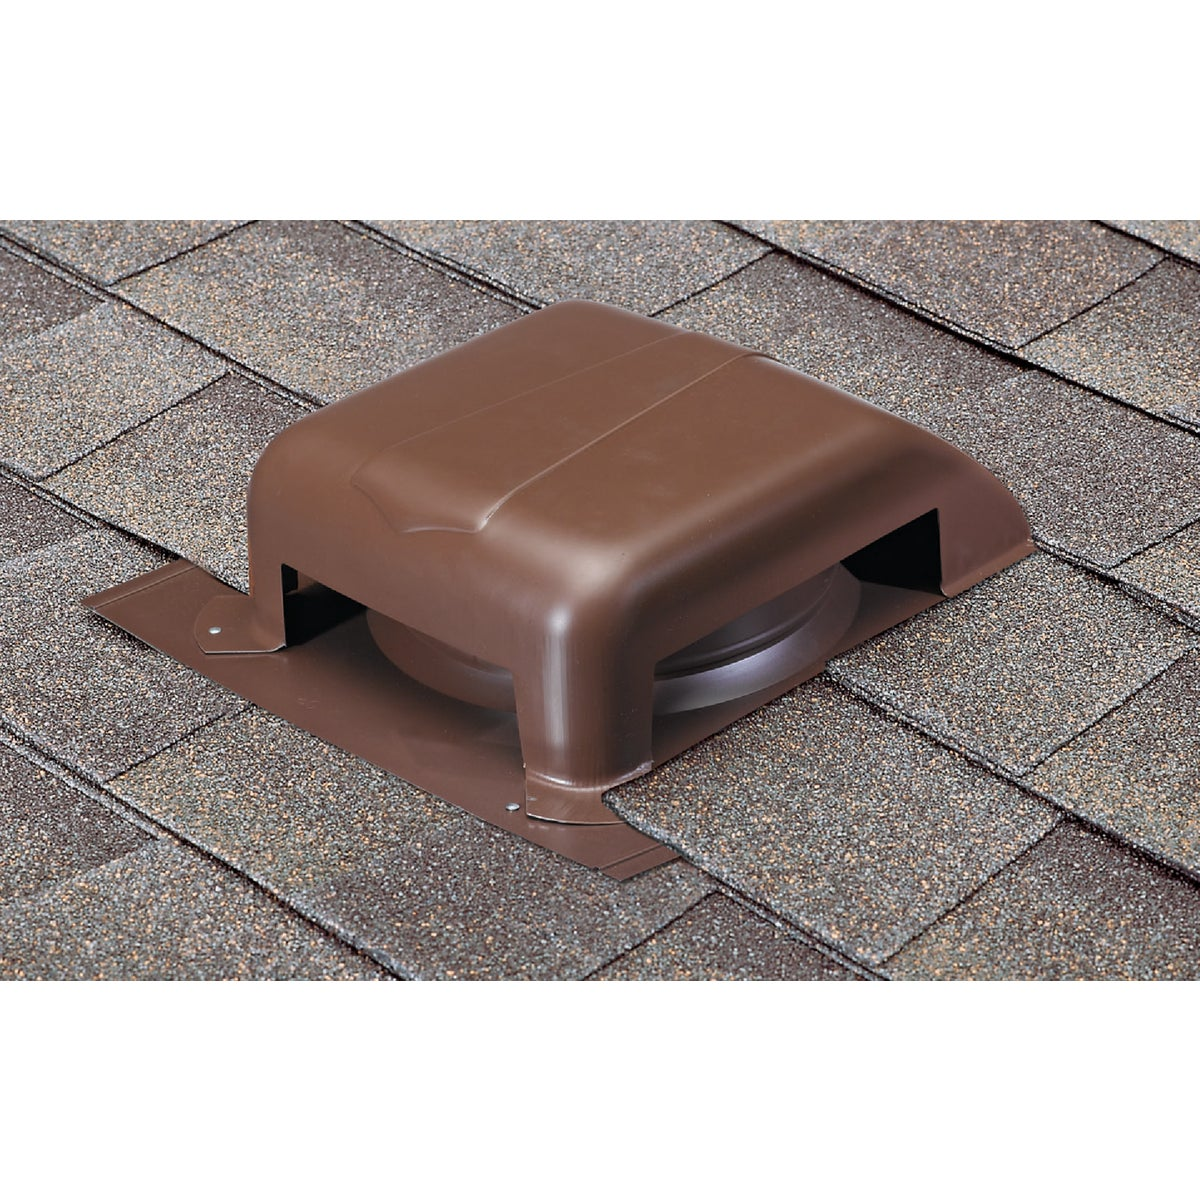 "40""BRN GAV S/B ROOF VENT - RVG40080 by Air Vent Inc"